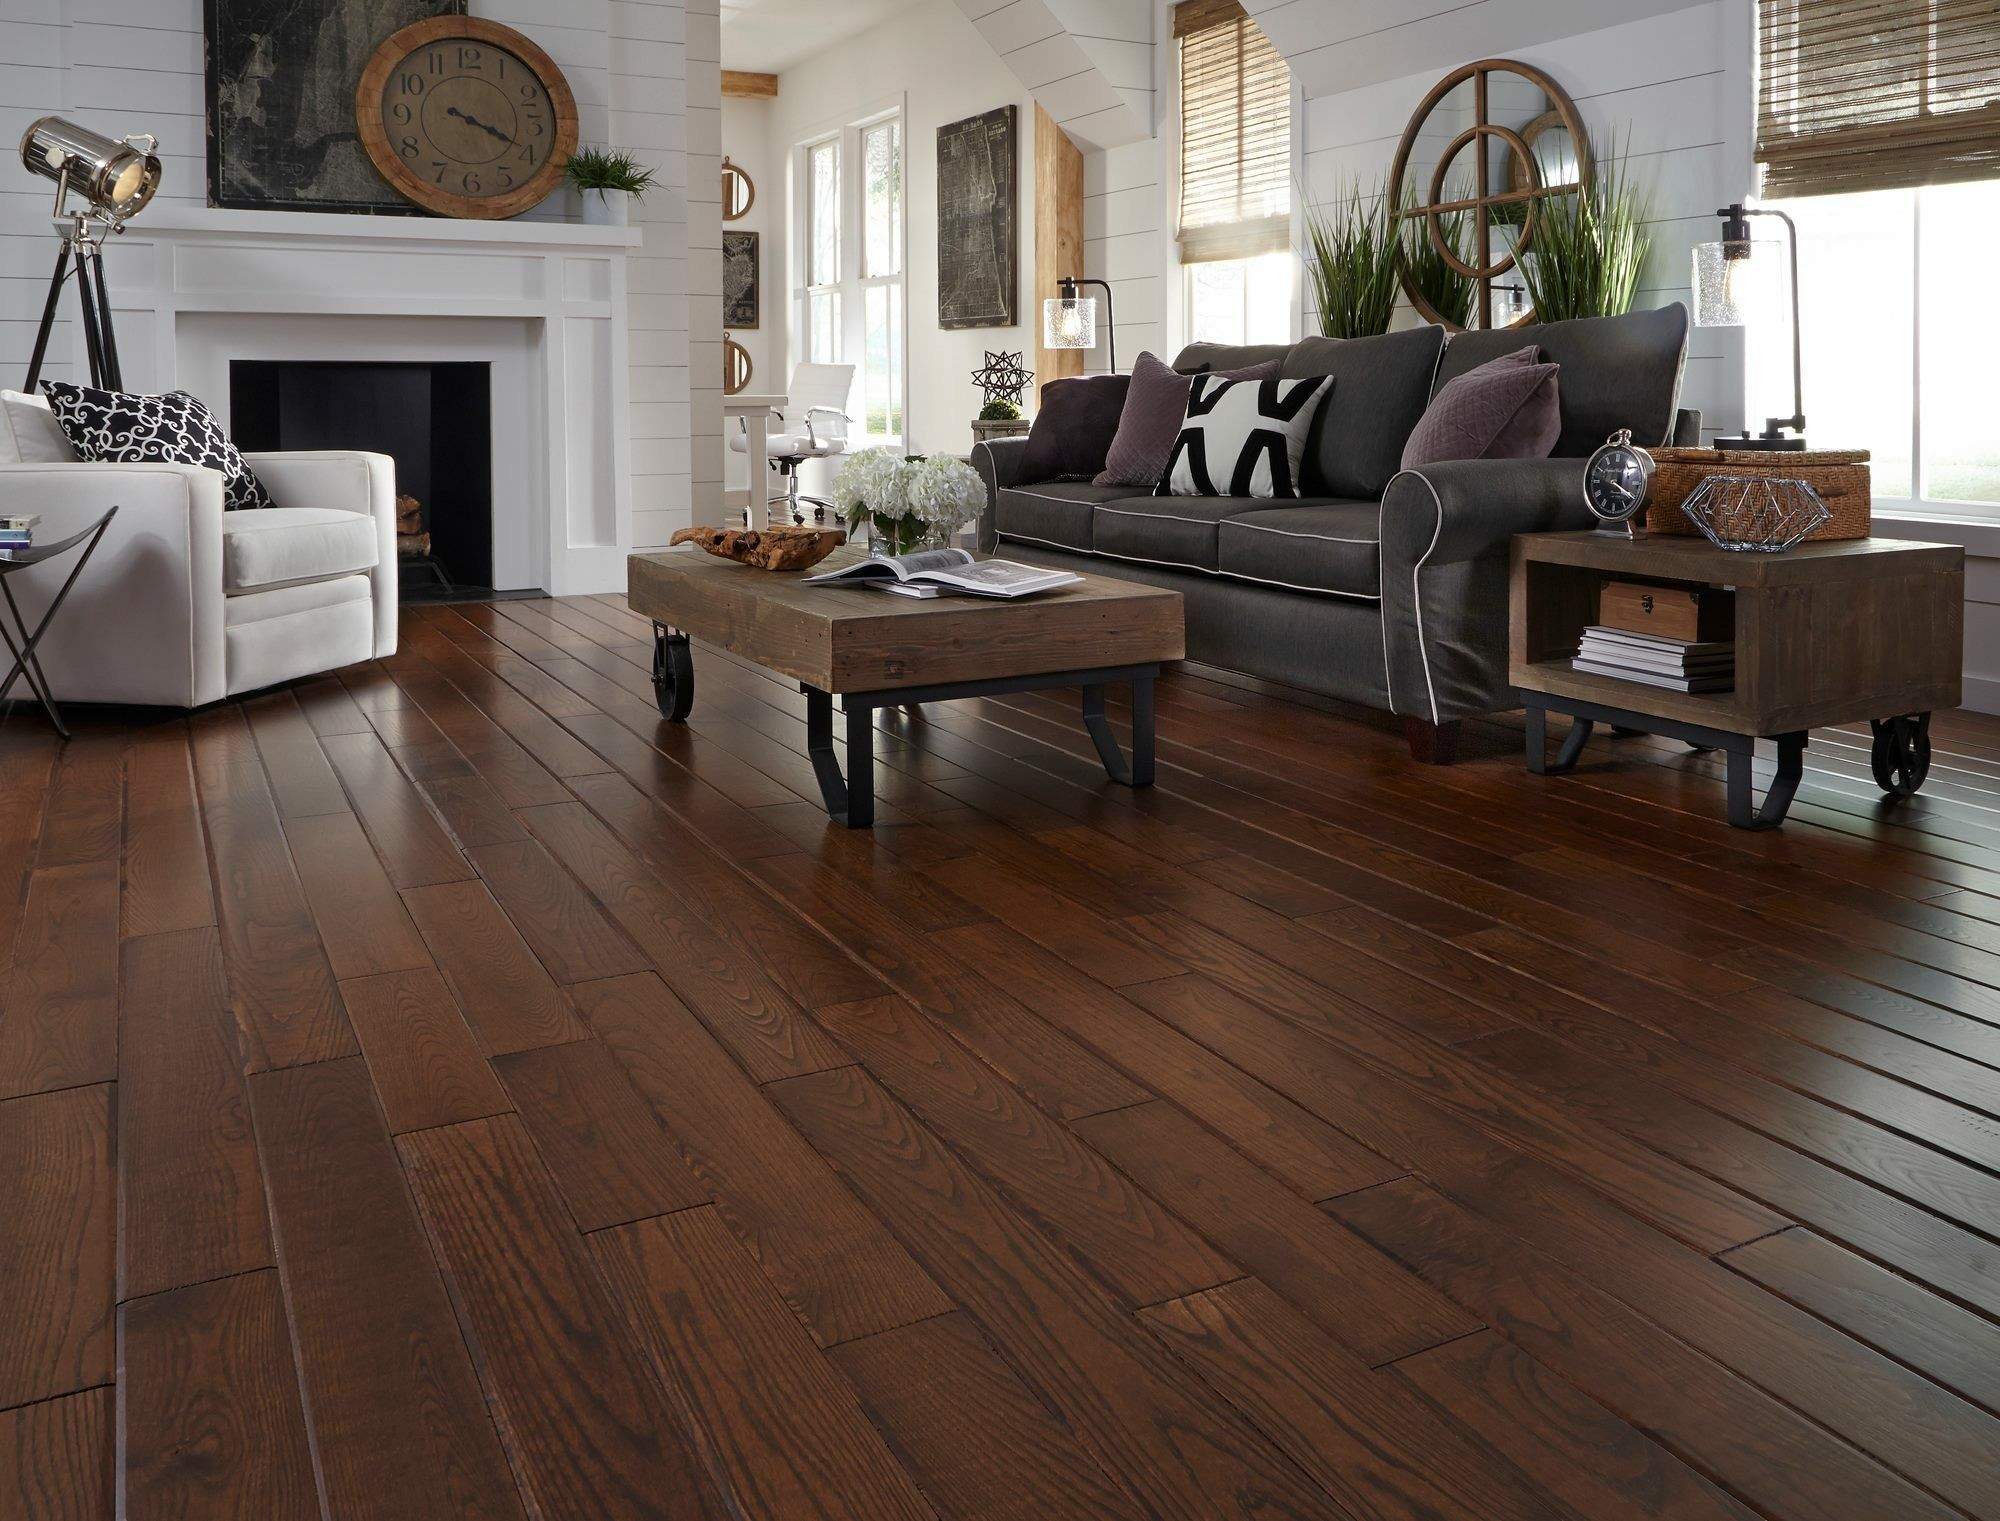 Pin by Doris Newberry on Home Home living room, Wood